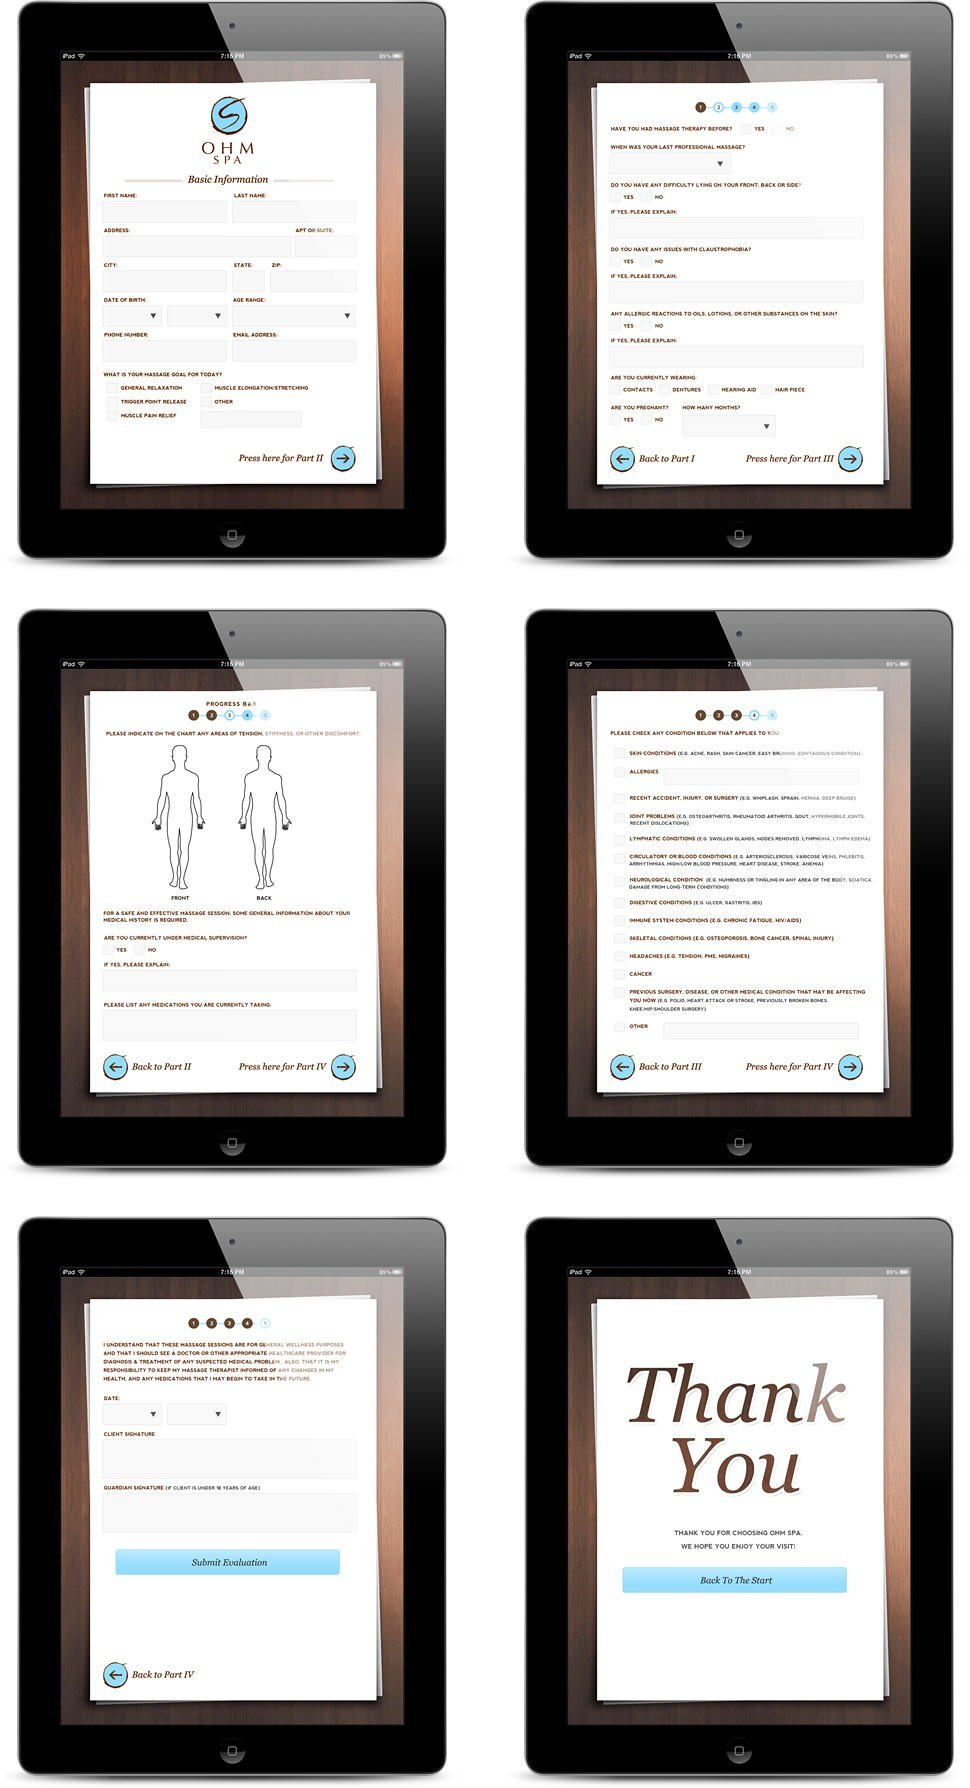 Ohm Spa iPad app